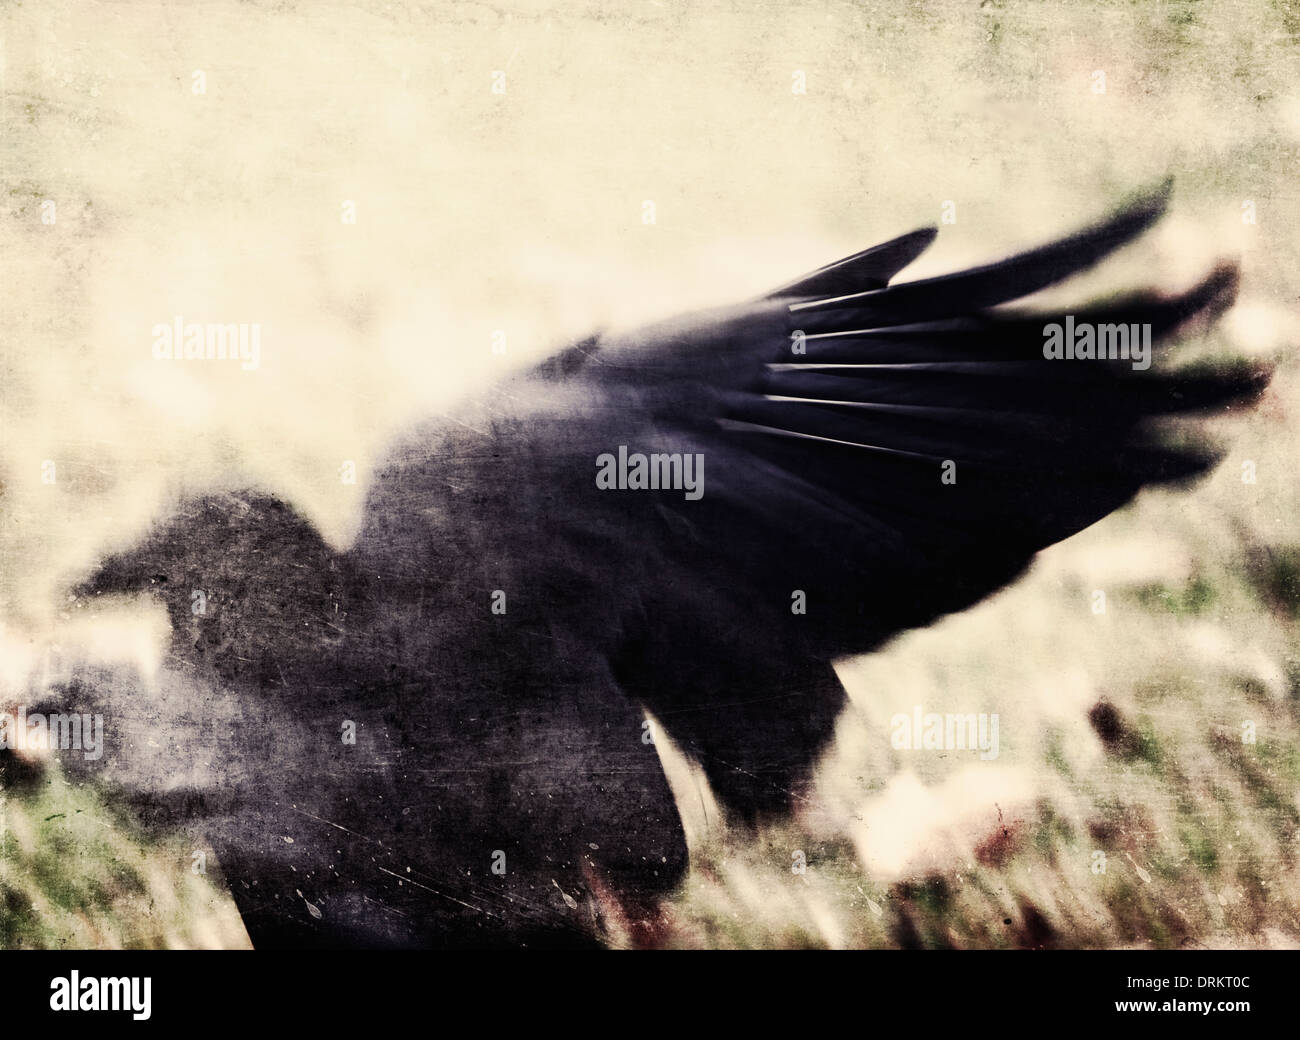 An impressionistic image of a raven taking flight. Stock Photo